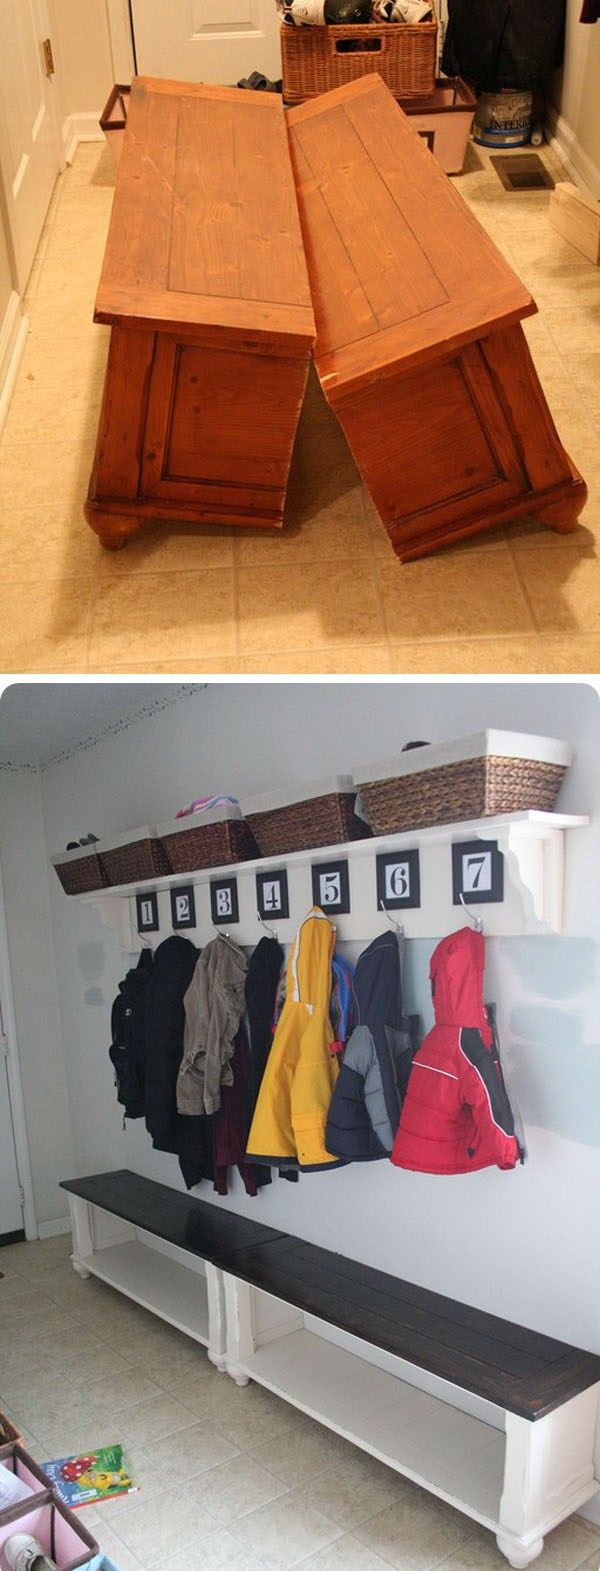 Turn an Old Coffee Table to a Mudroom Bench.                                                                                                                                                                                 More